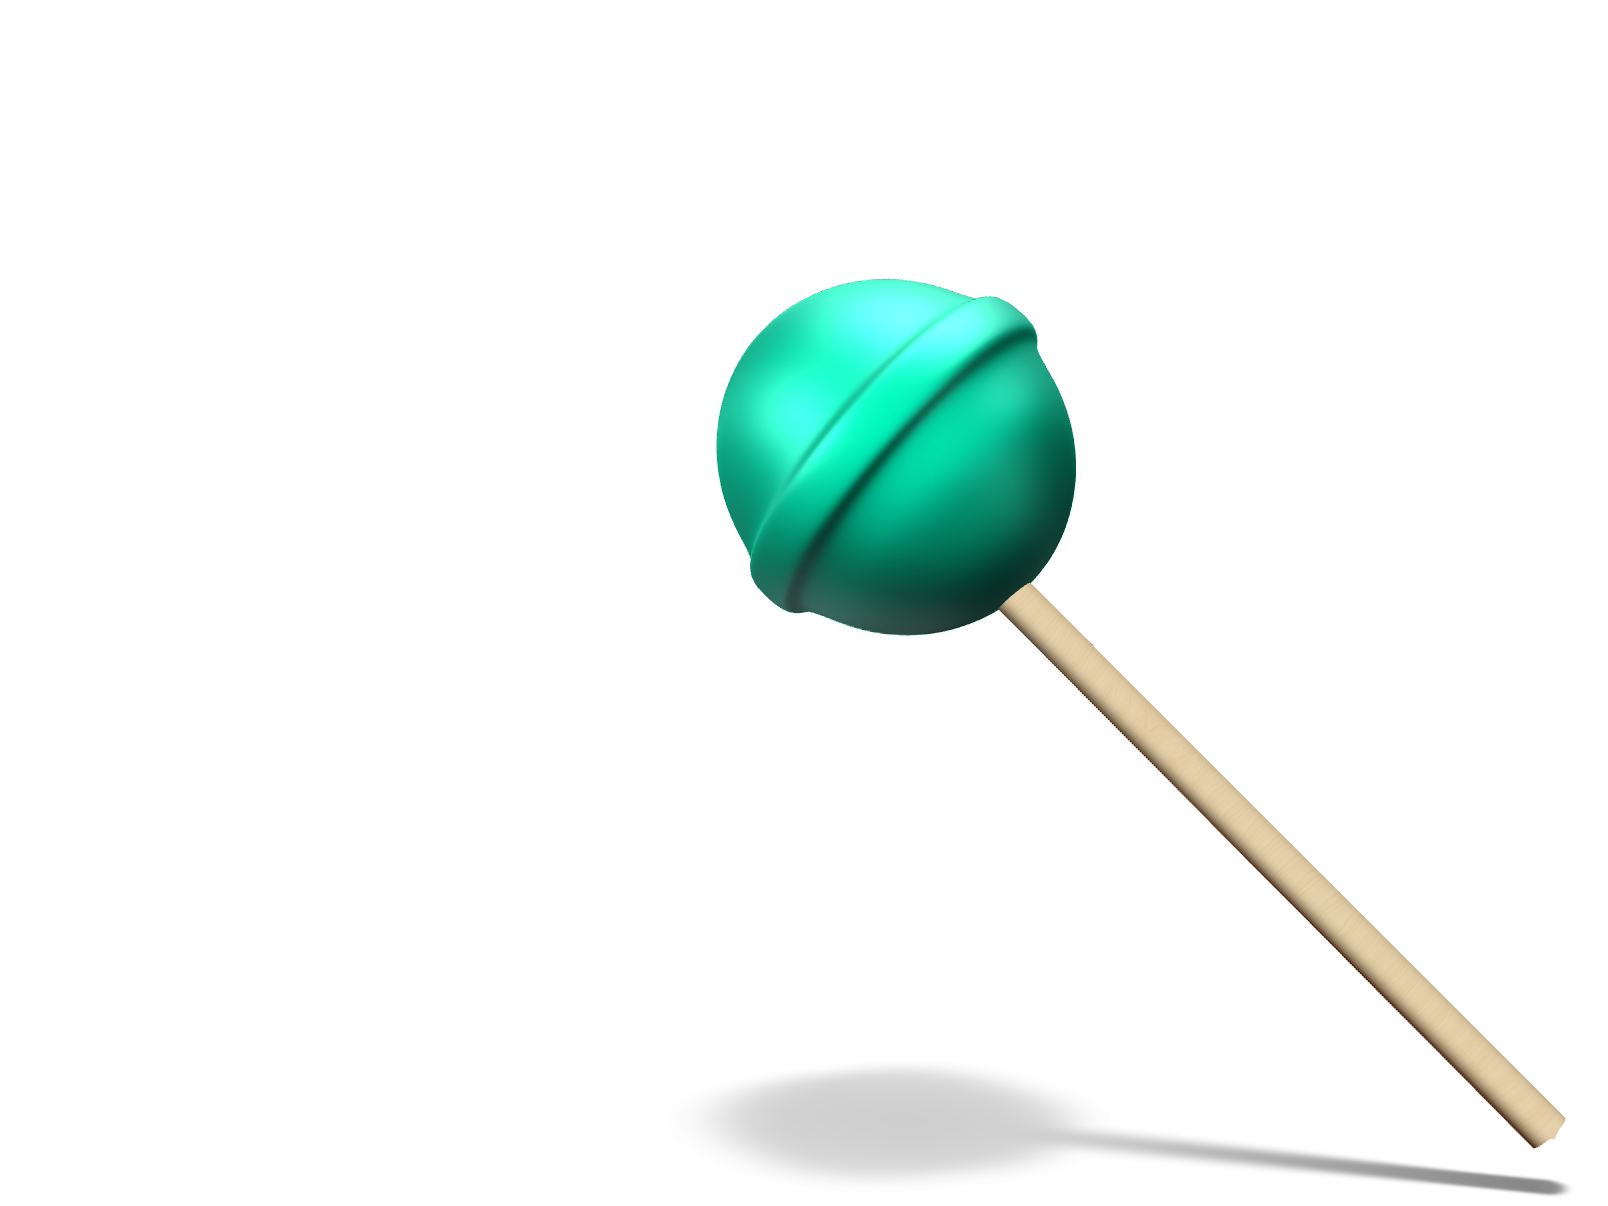 lollipop scene - 3D design by lcroake.23 Nov 5, 2017